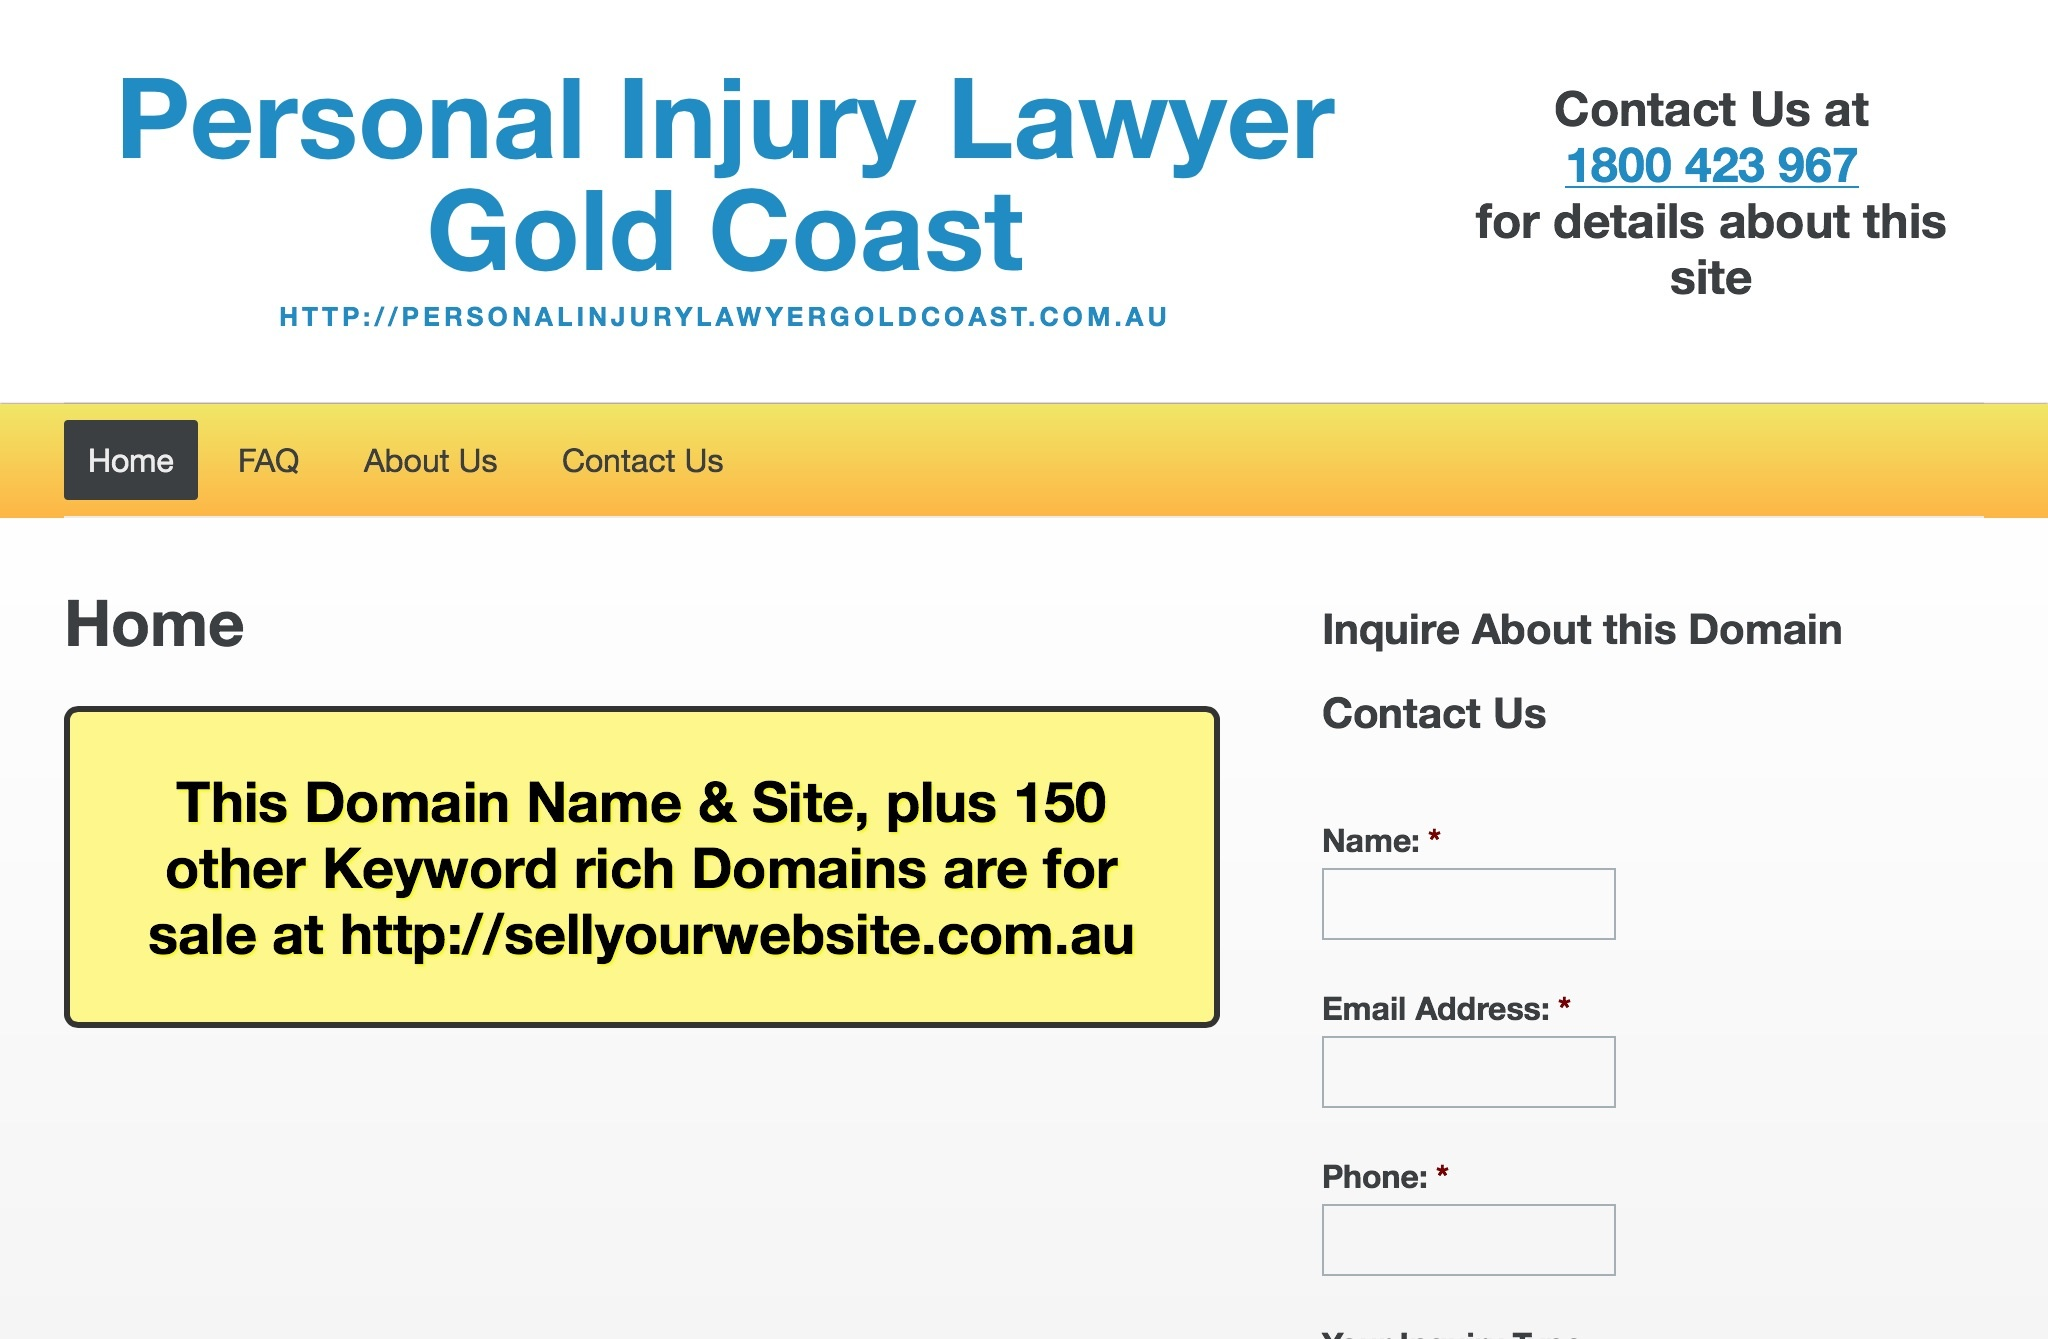 Personal Injury Laywer Gold Coast